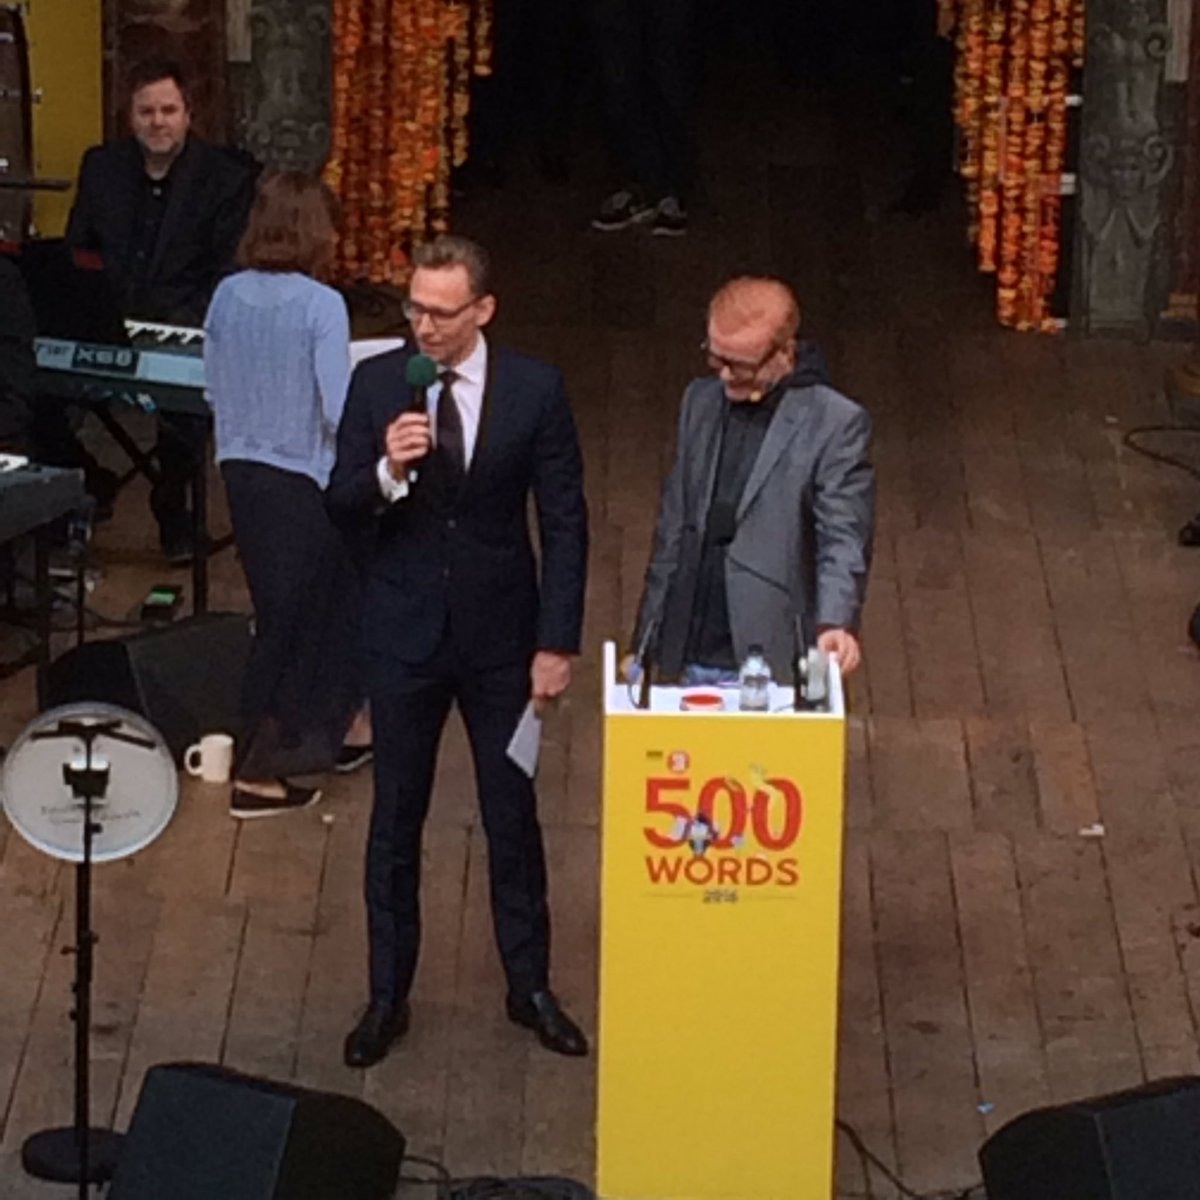 Tom Hiddleston reads Silver prize winning story on @BBCRadio2 by Clara Cowan from Scotland about dementia #500words https://t.co/53TfIJRs3f